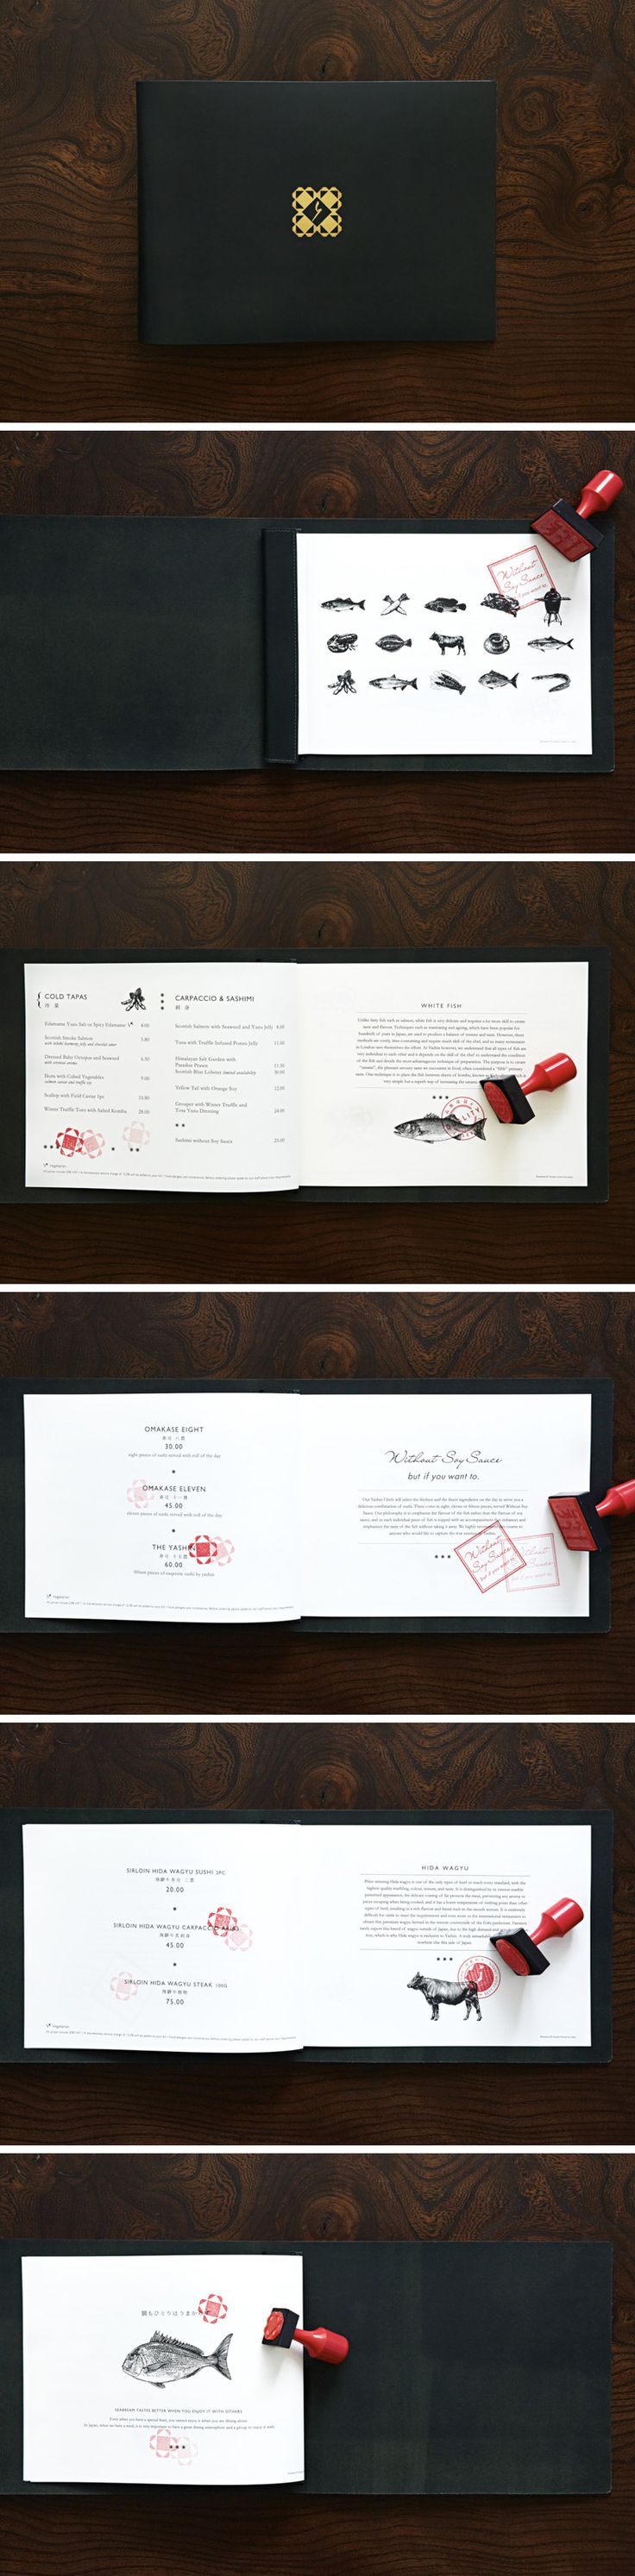 Yashin Sushi & Bar London #restaurant #leather #menu #design #stamp